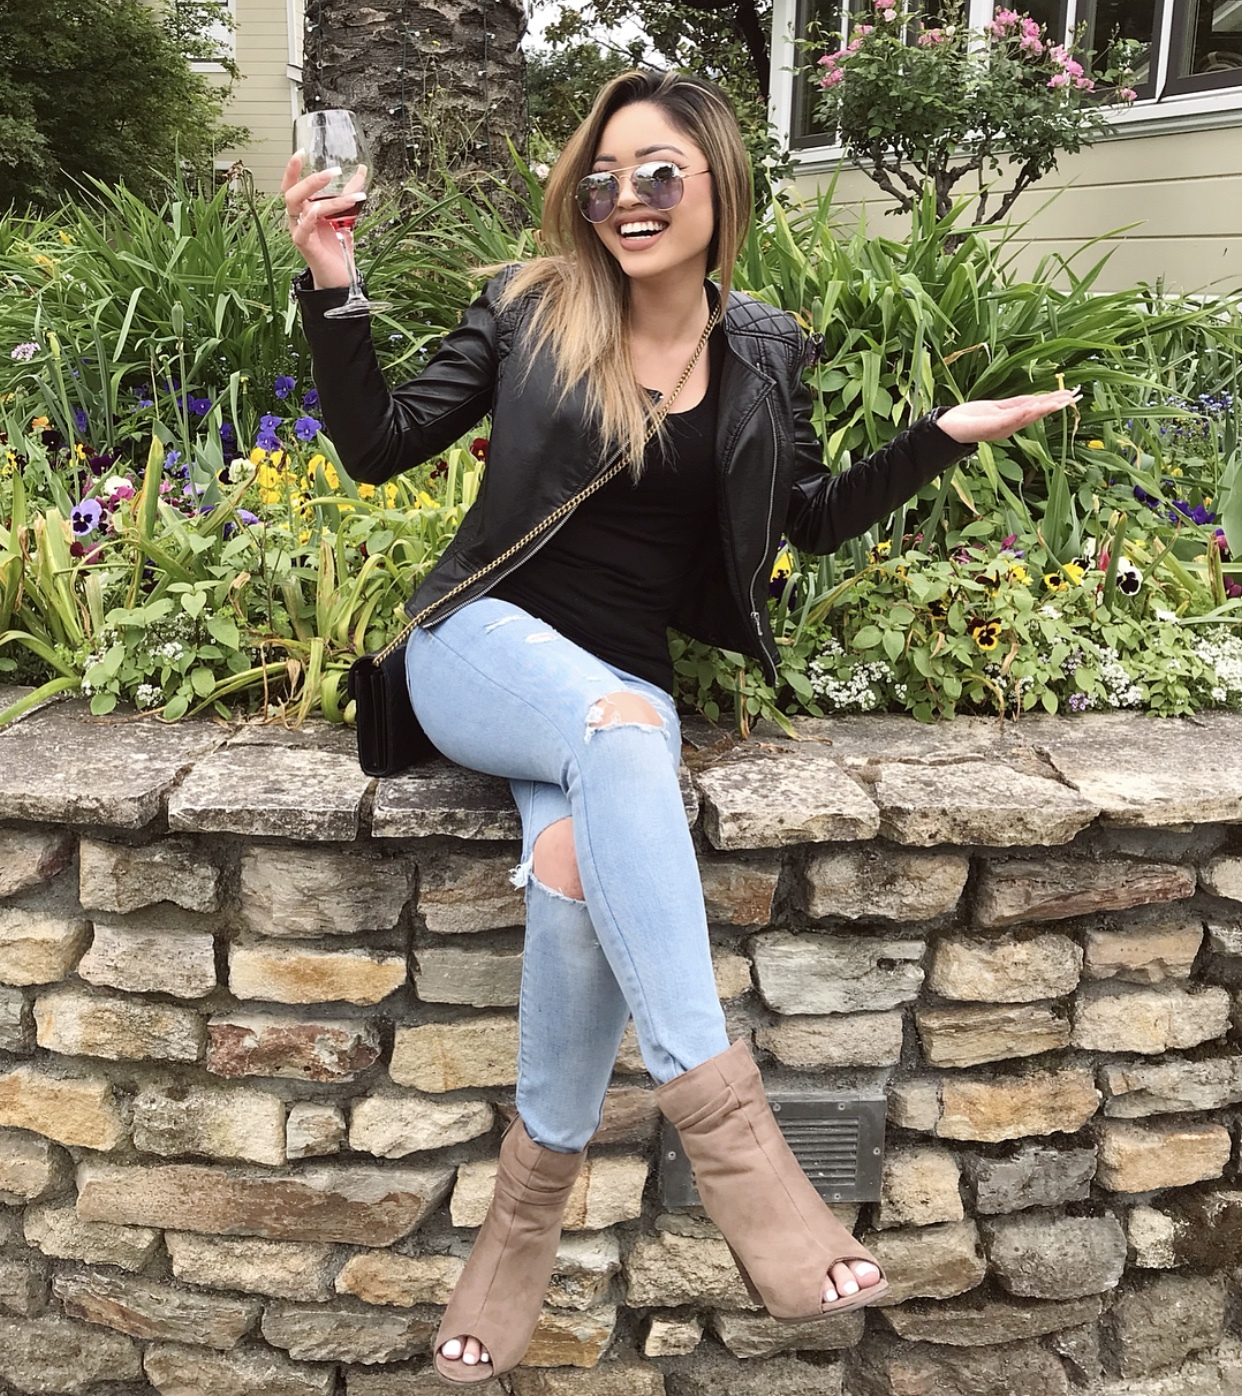 23-year-old, Single From: Danville , Ca, United States